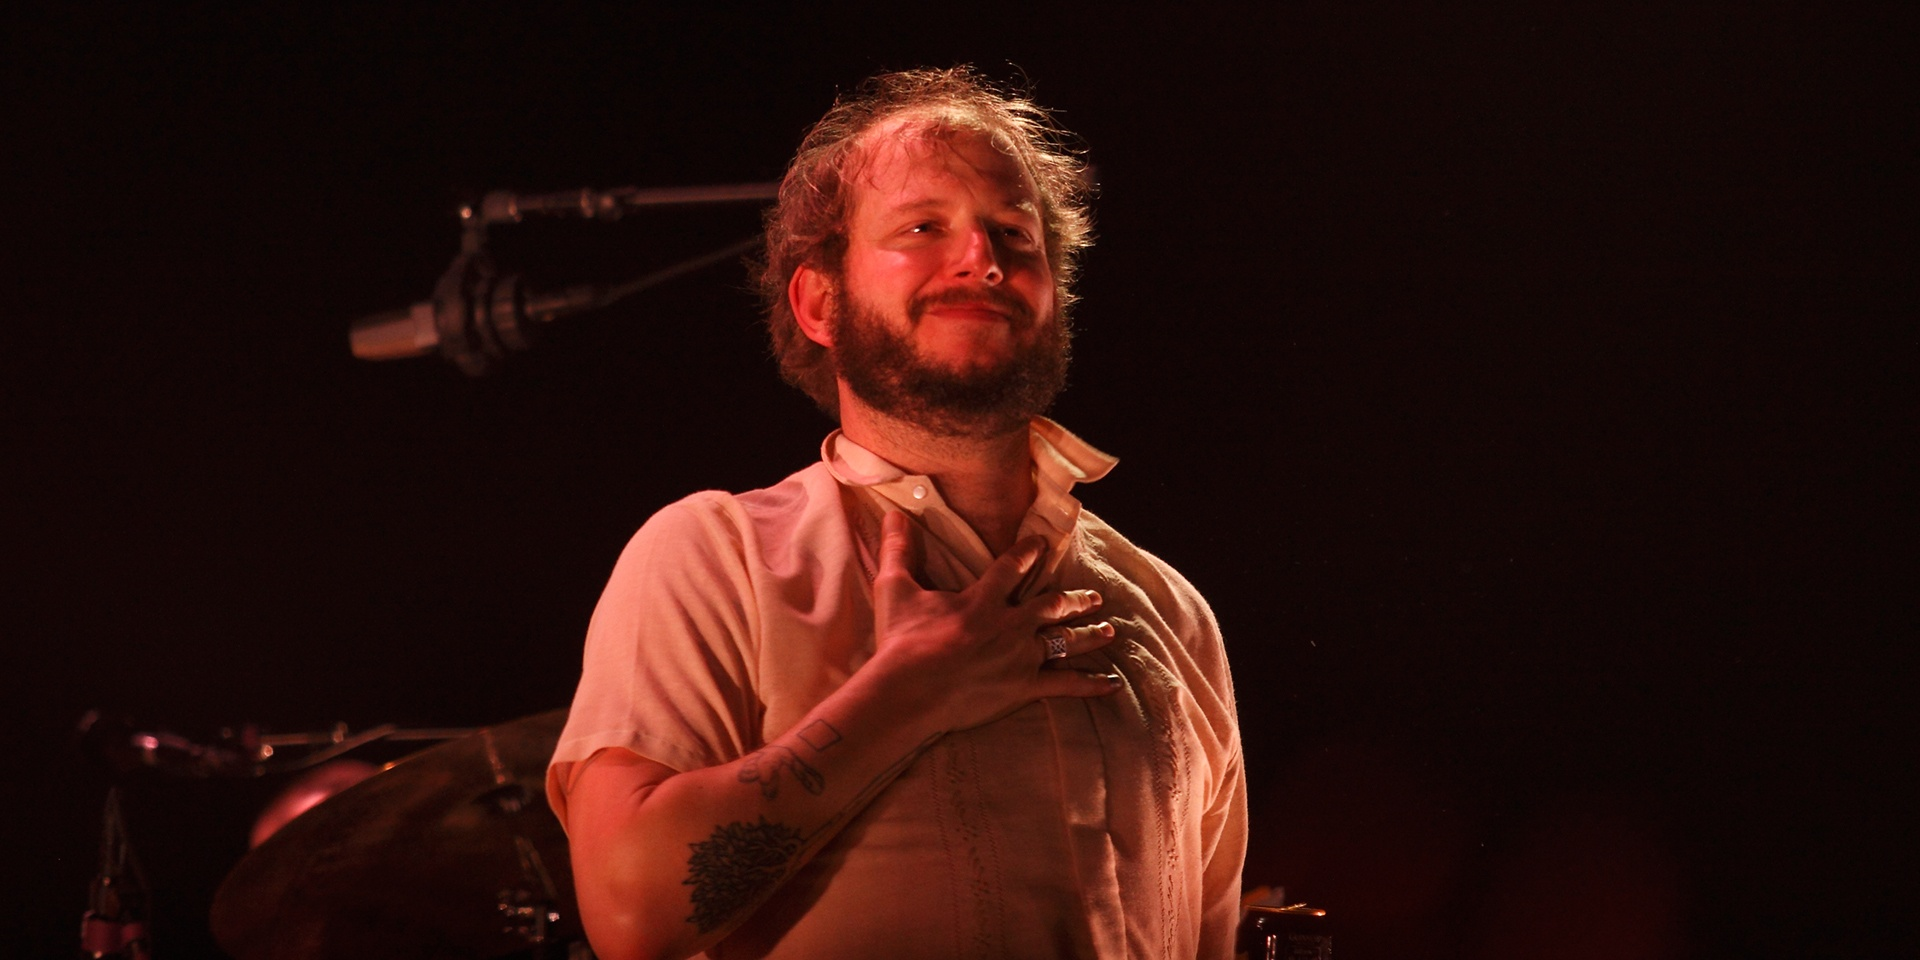 GIG REPORT: Bon Iver stuns with triumphant live debut in Singapore